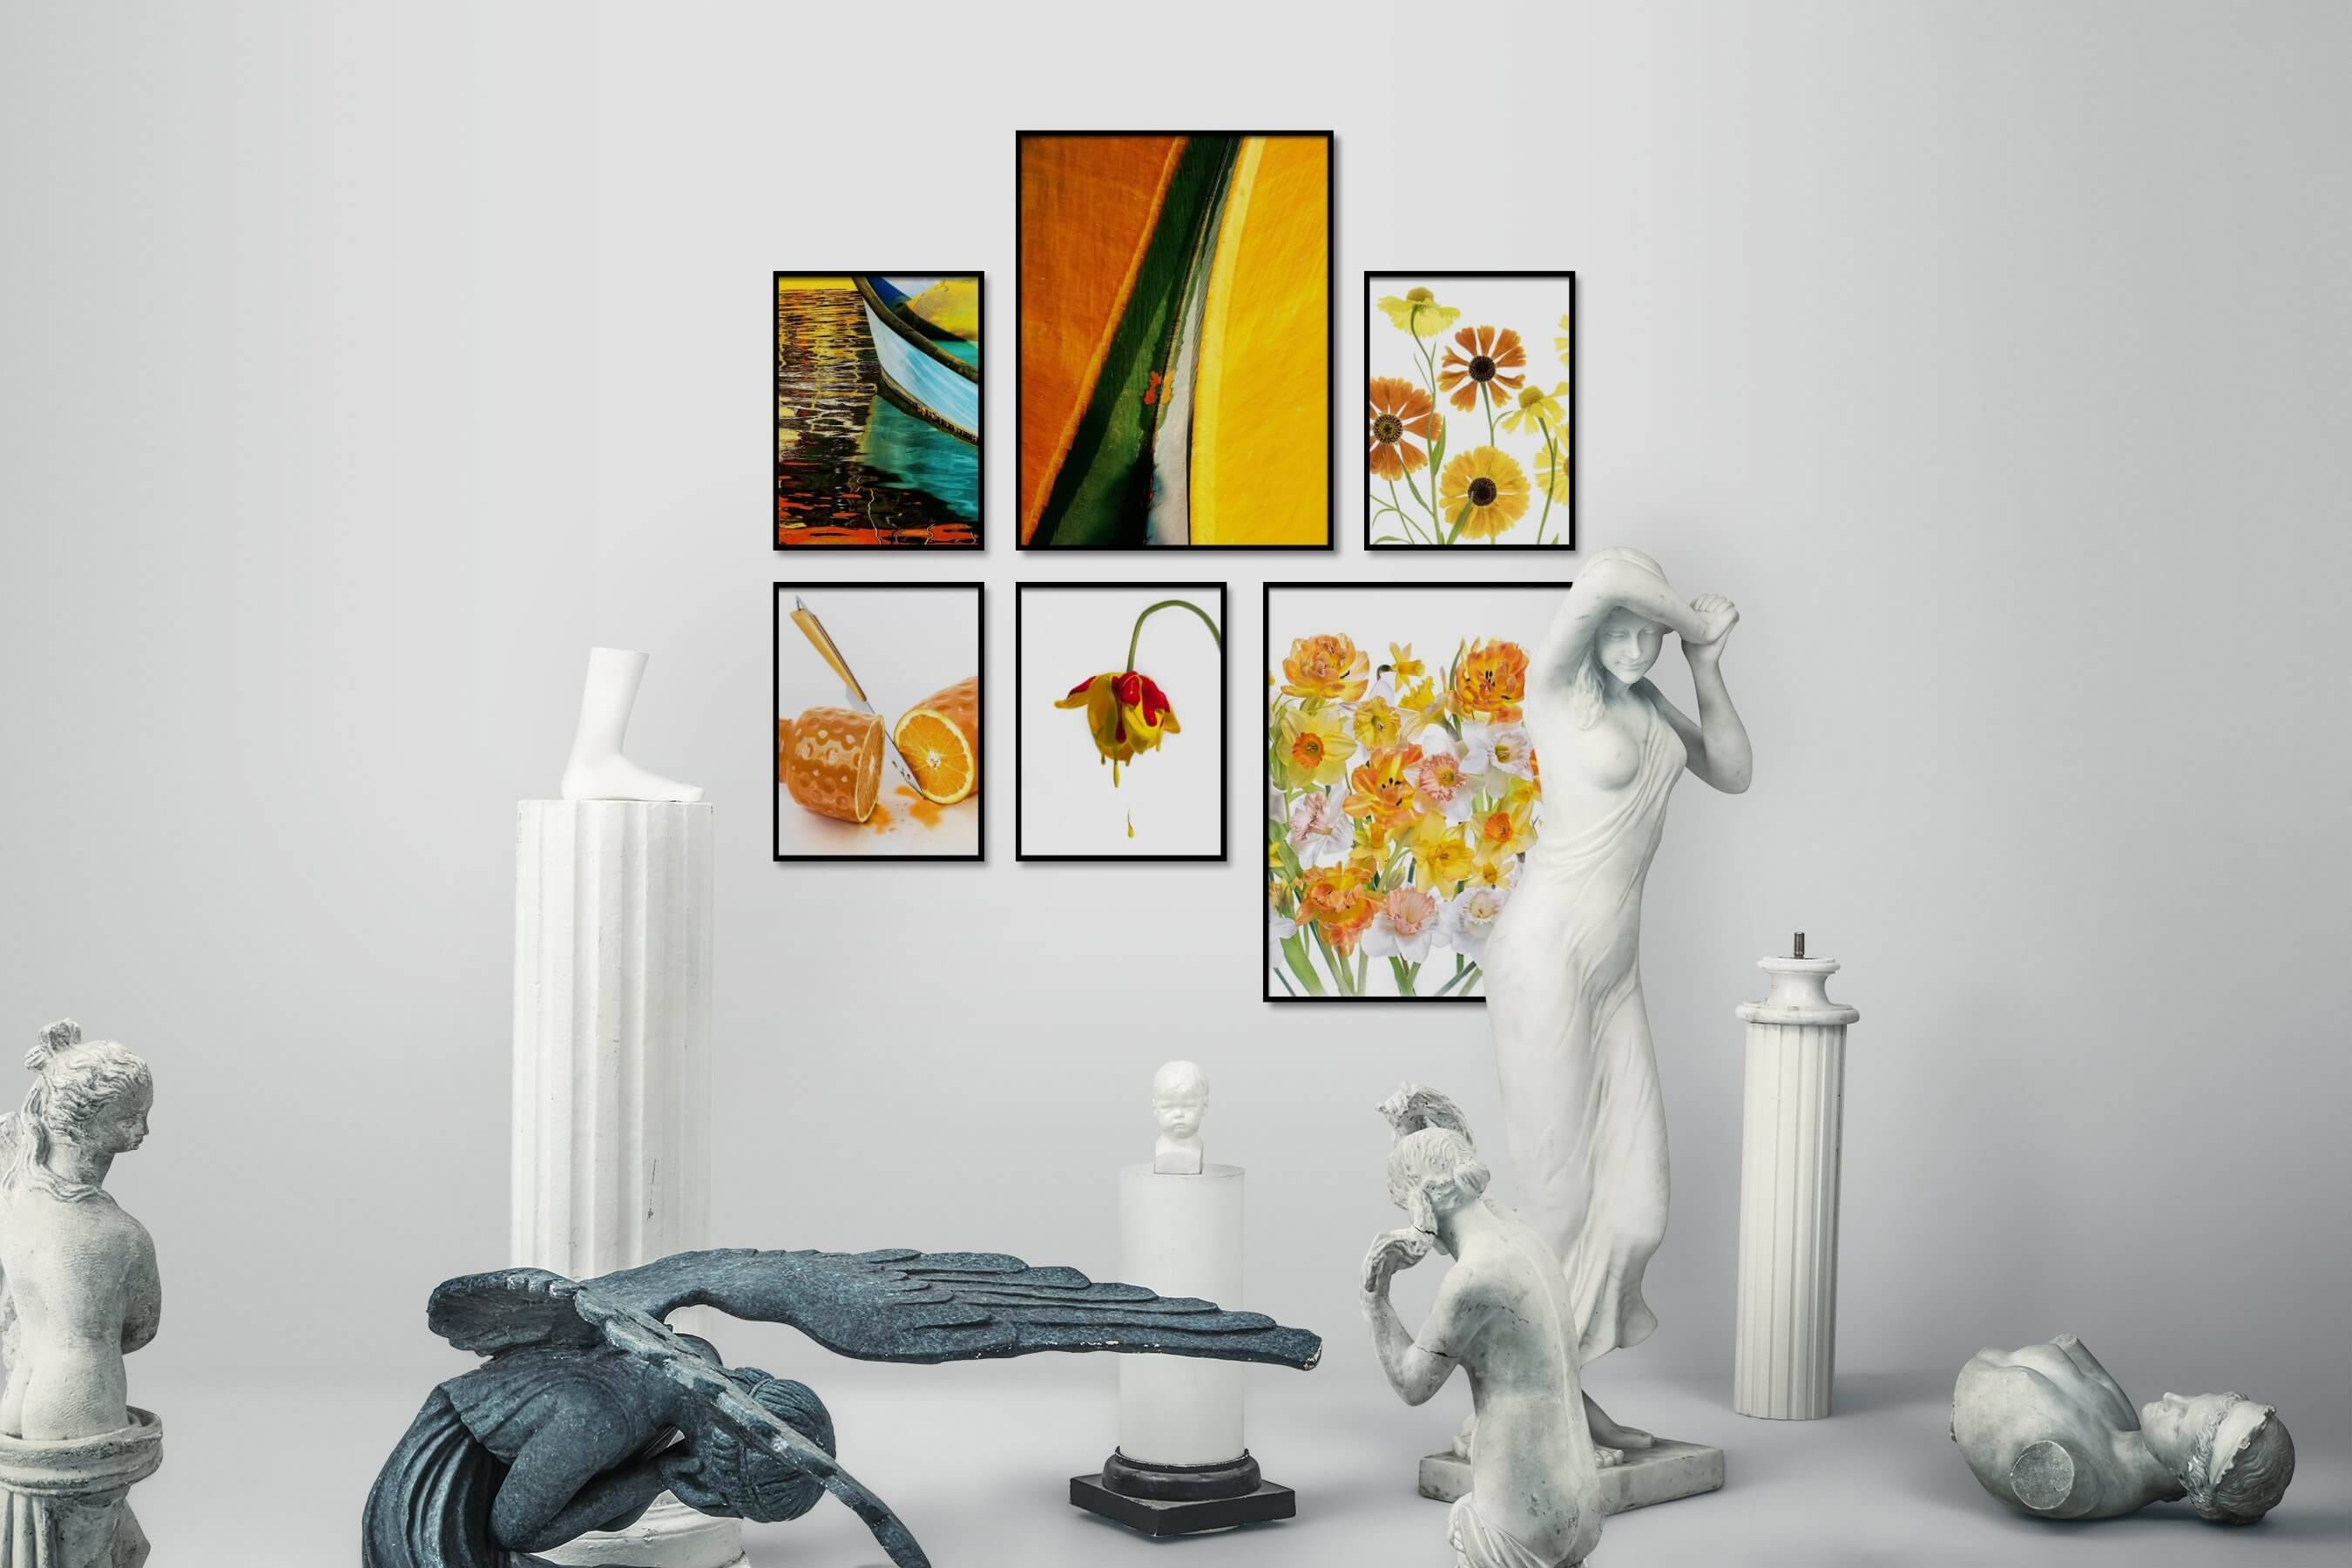 Gallery wall idea with six framed pictures arranged on a wall depicting Colorful, For the Maximalist, Beach & Water, For the Moderate, Bright Tones, For the Minimalist, and Flowers & Plants